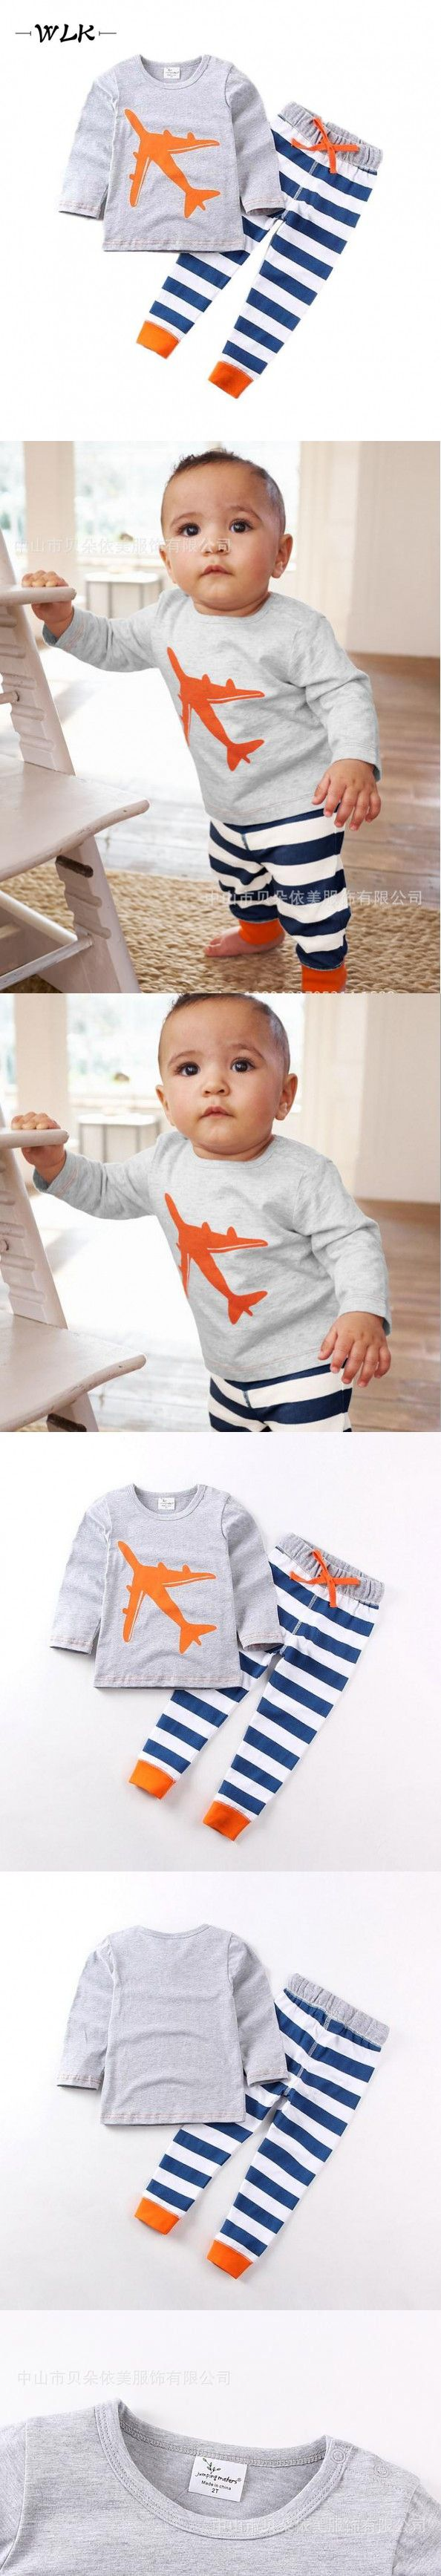 2016 Newest Kids Clothes European Style Spring Boys Sets Cartoon Plane Print Tops + Strpied Long Pant Baby Suits Boys Sets $11.36